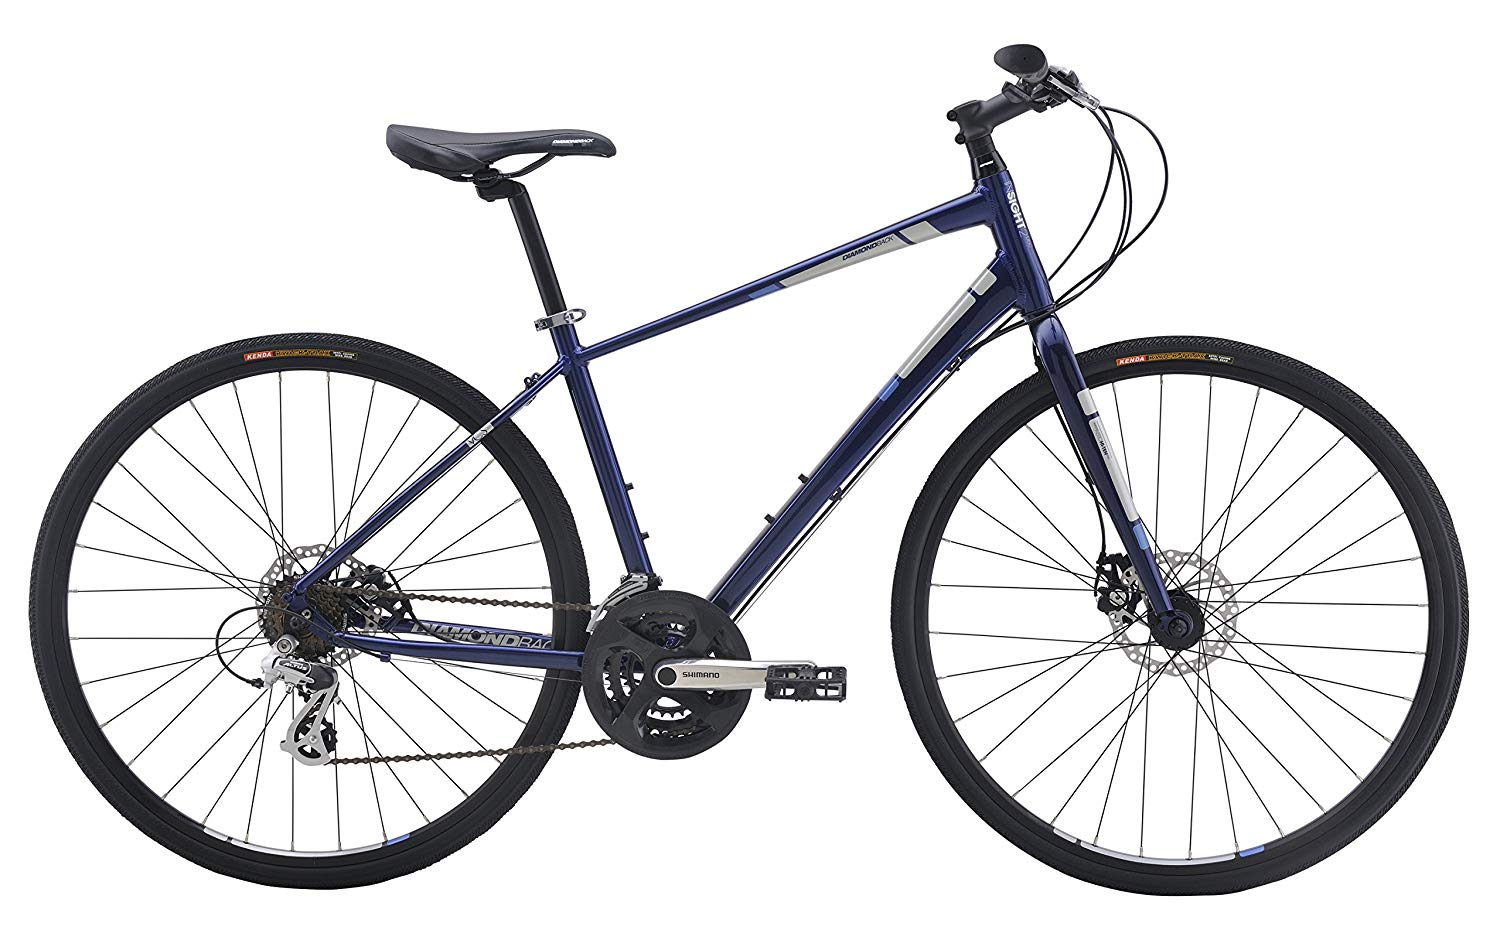 Diamondback Bicycles Insight 2 Complete Hybrid Bike Review